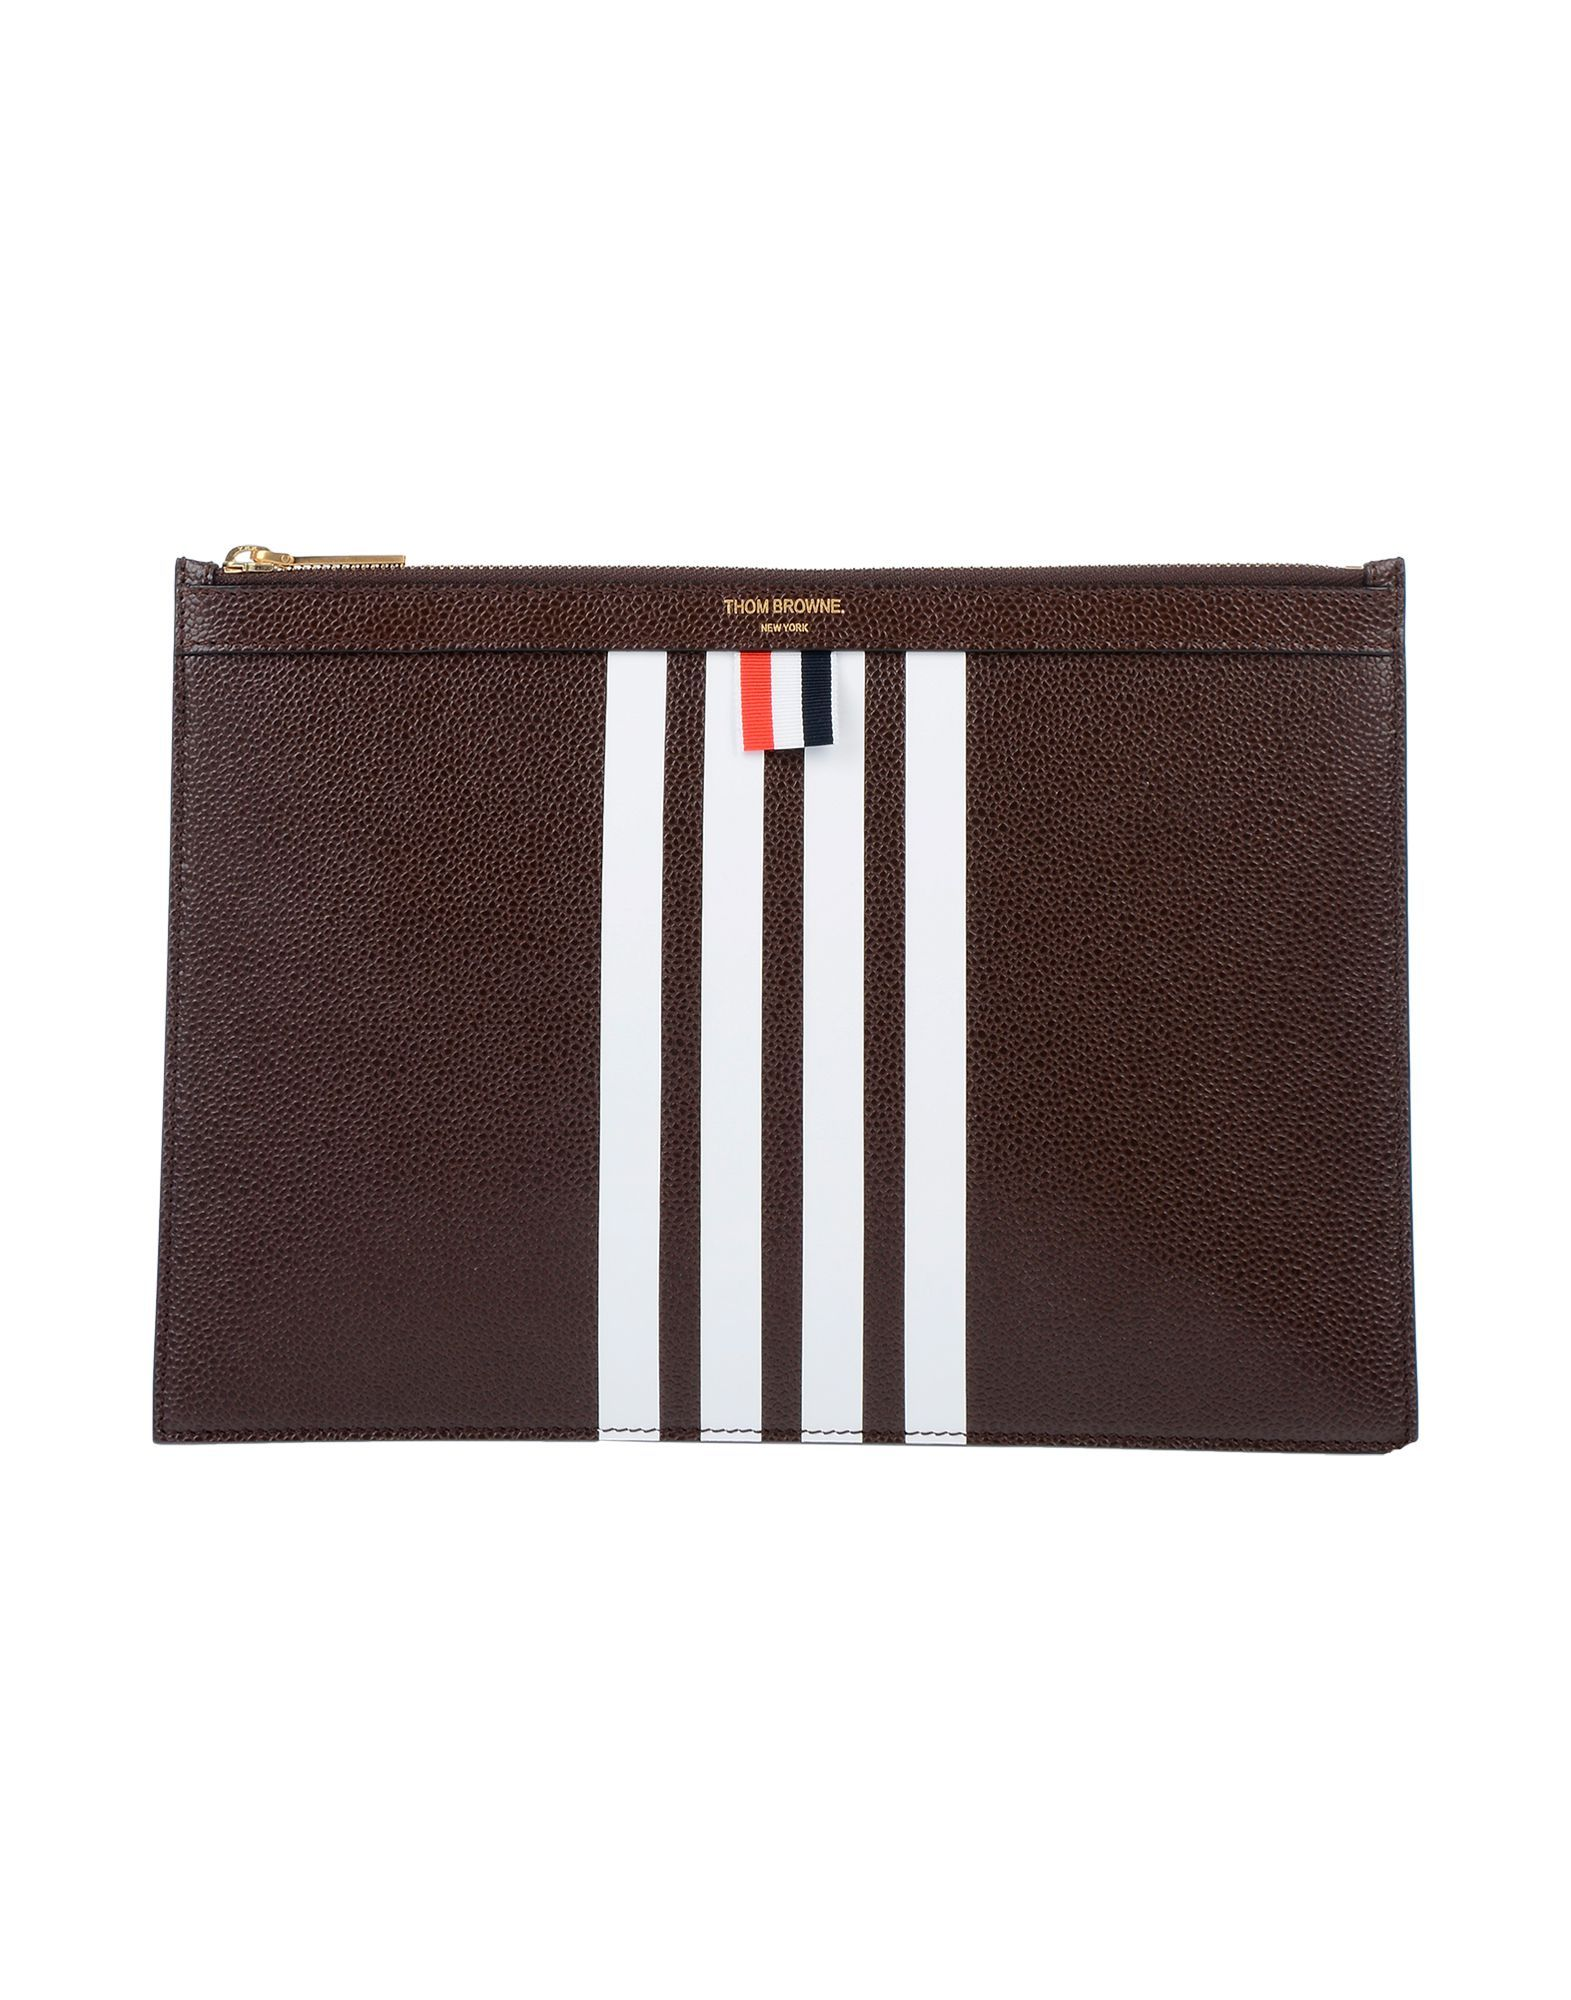 c635c0867f THOM BROWNE HANDBAGS. #thombrowne #bags #leather #clutch #hand bags ...